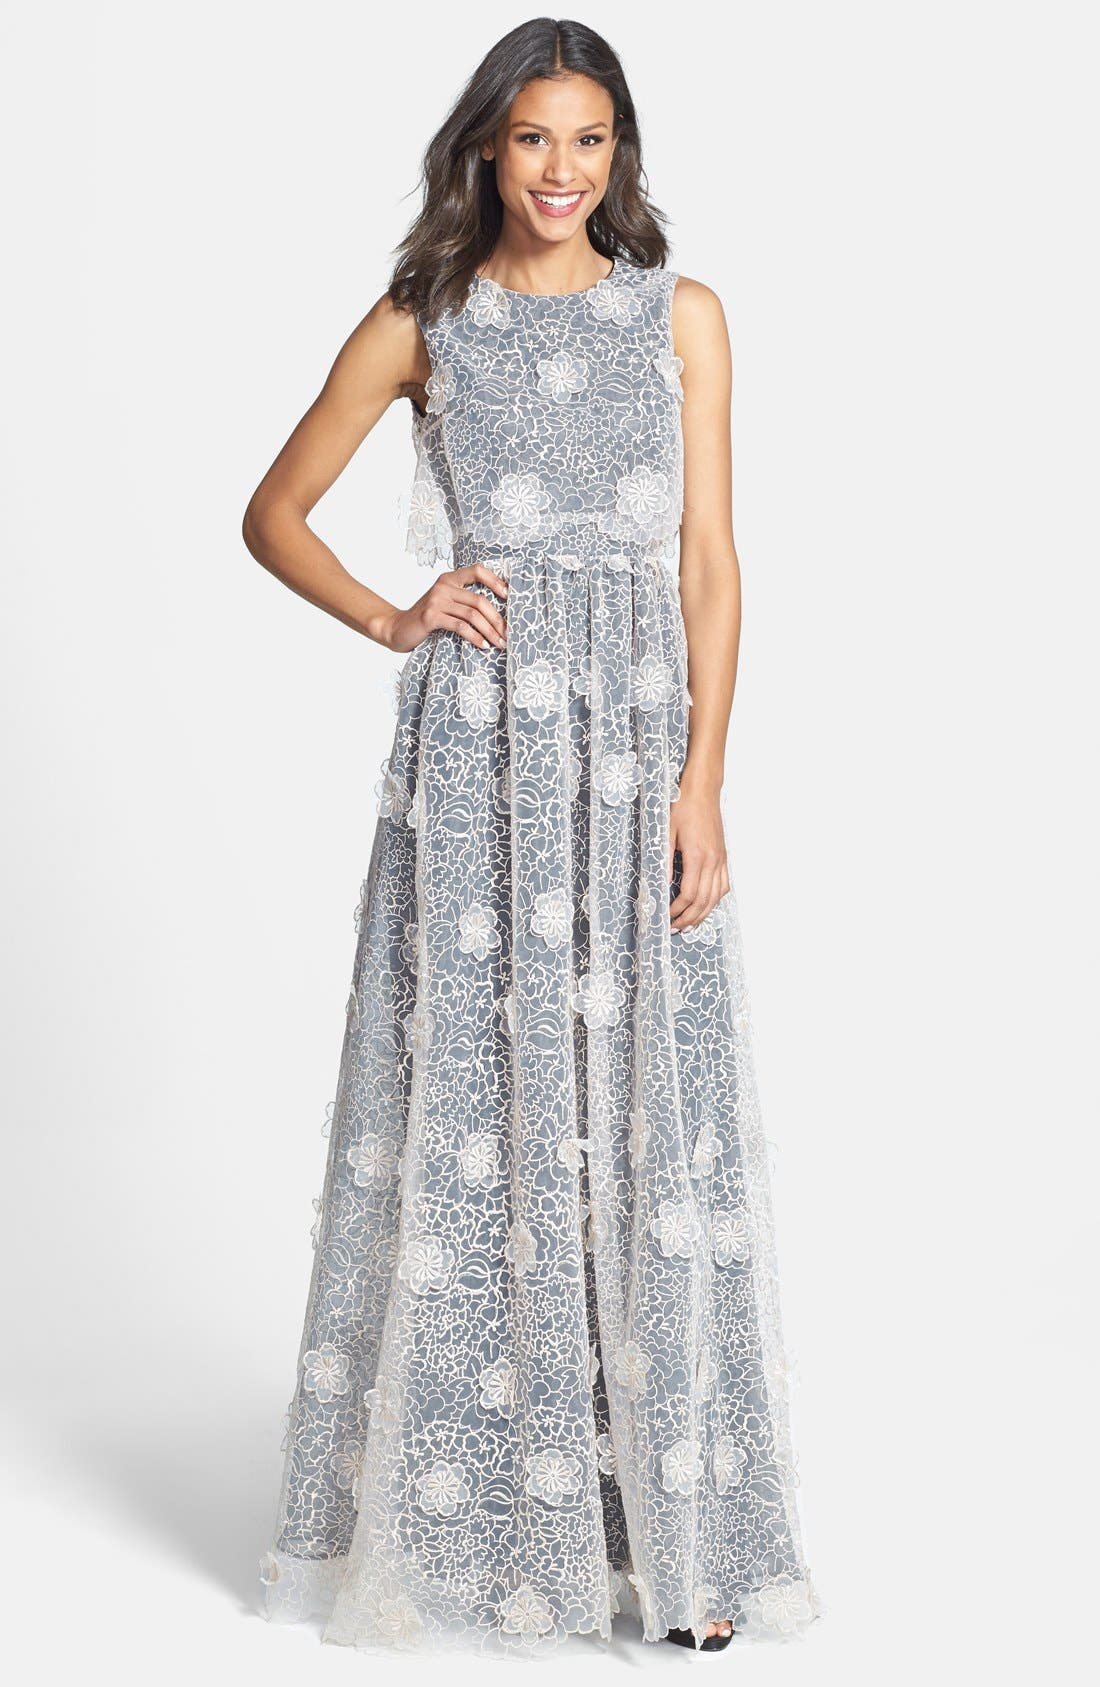 ERIN ERIN FETHERSTON, 'Jan' 3D Floral Organza Gown, Main thumbnail 1, color, 687